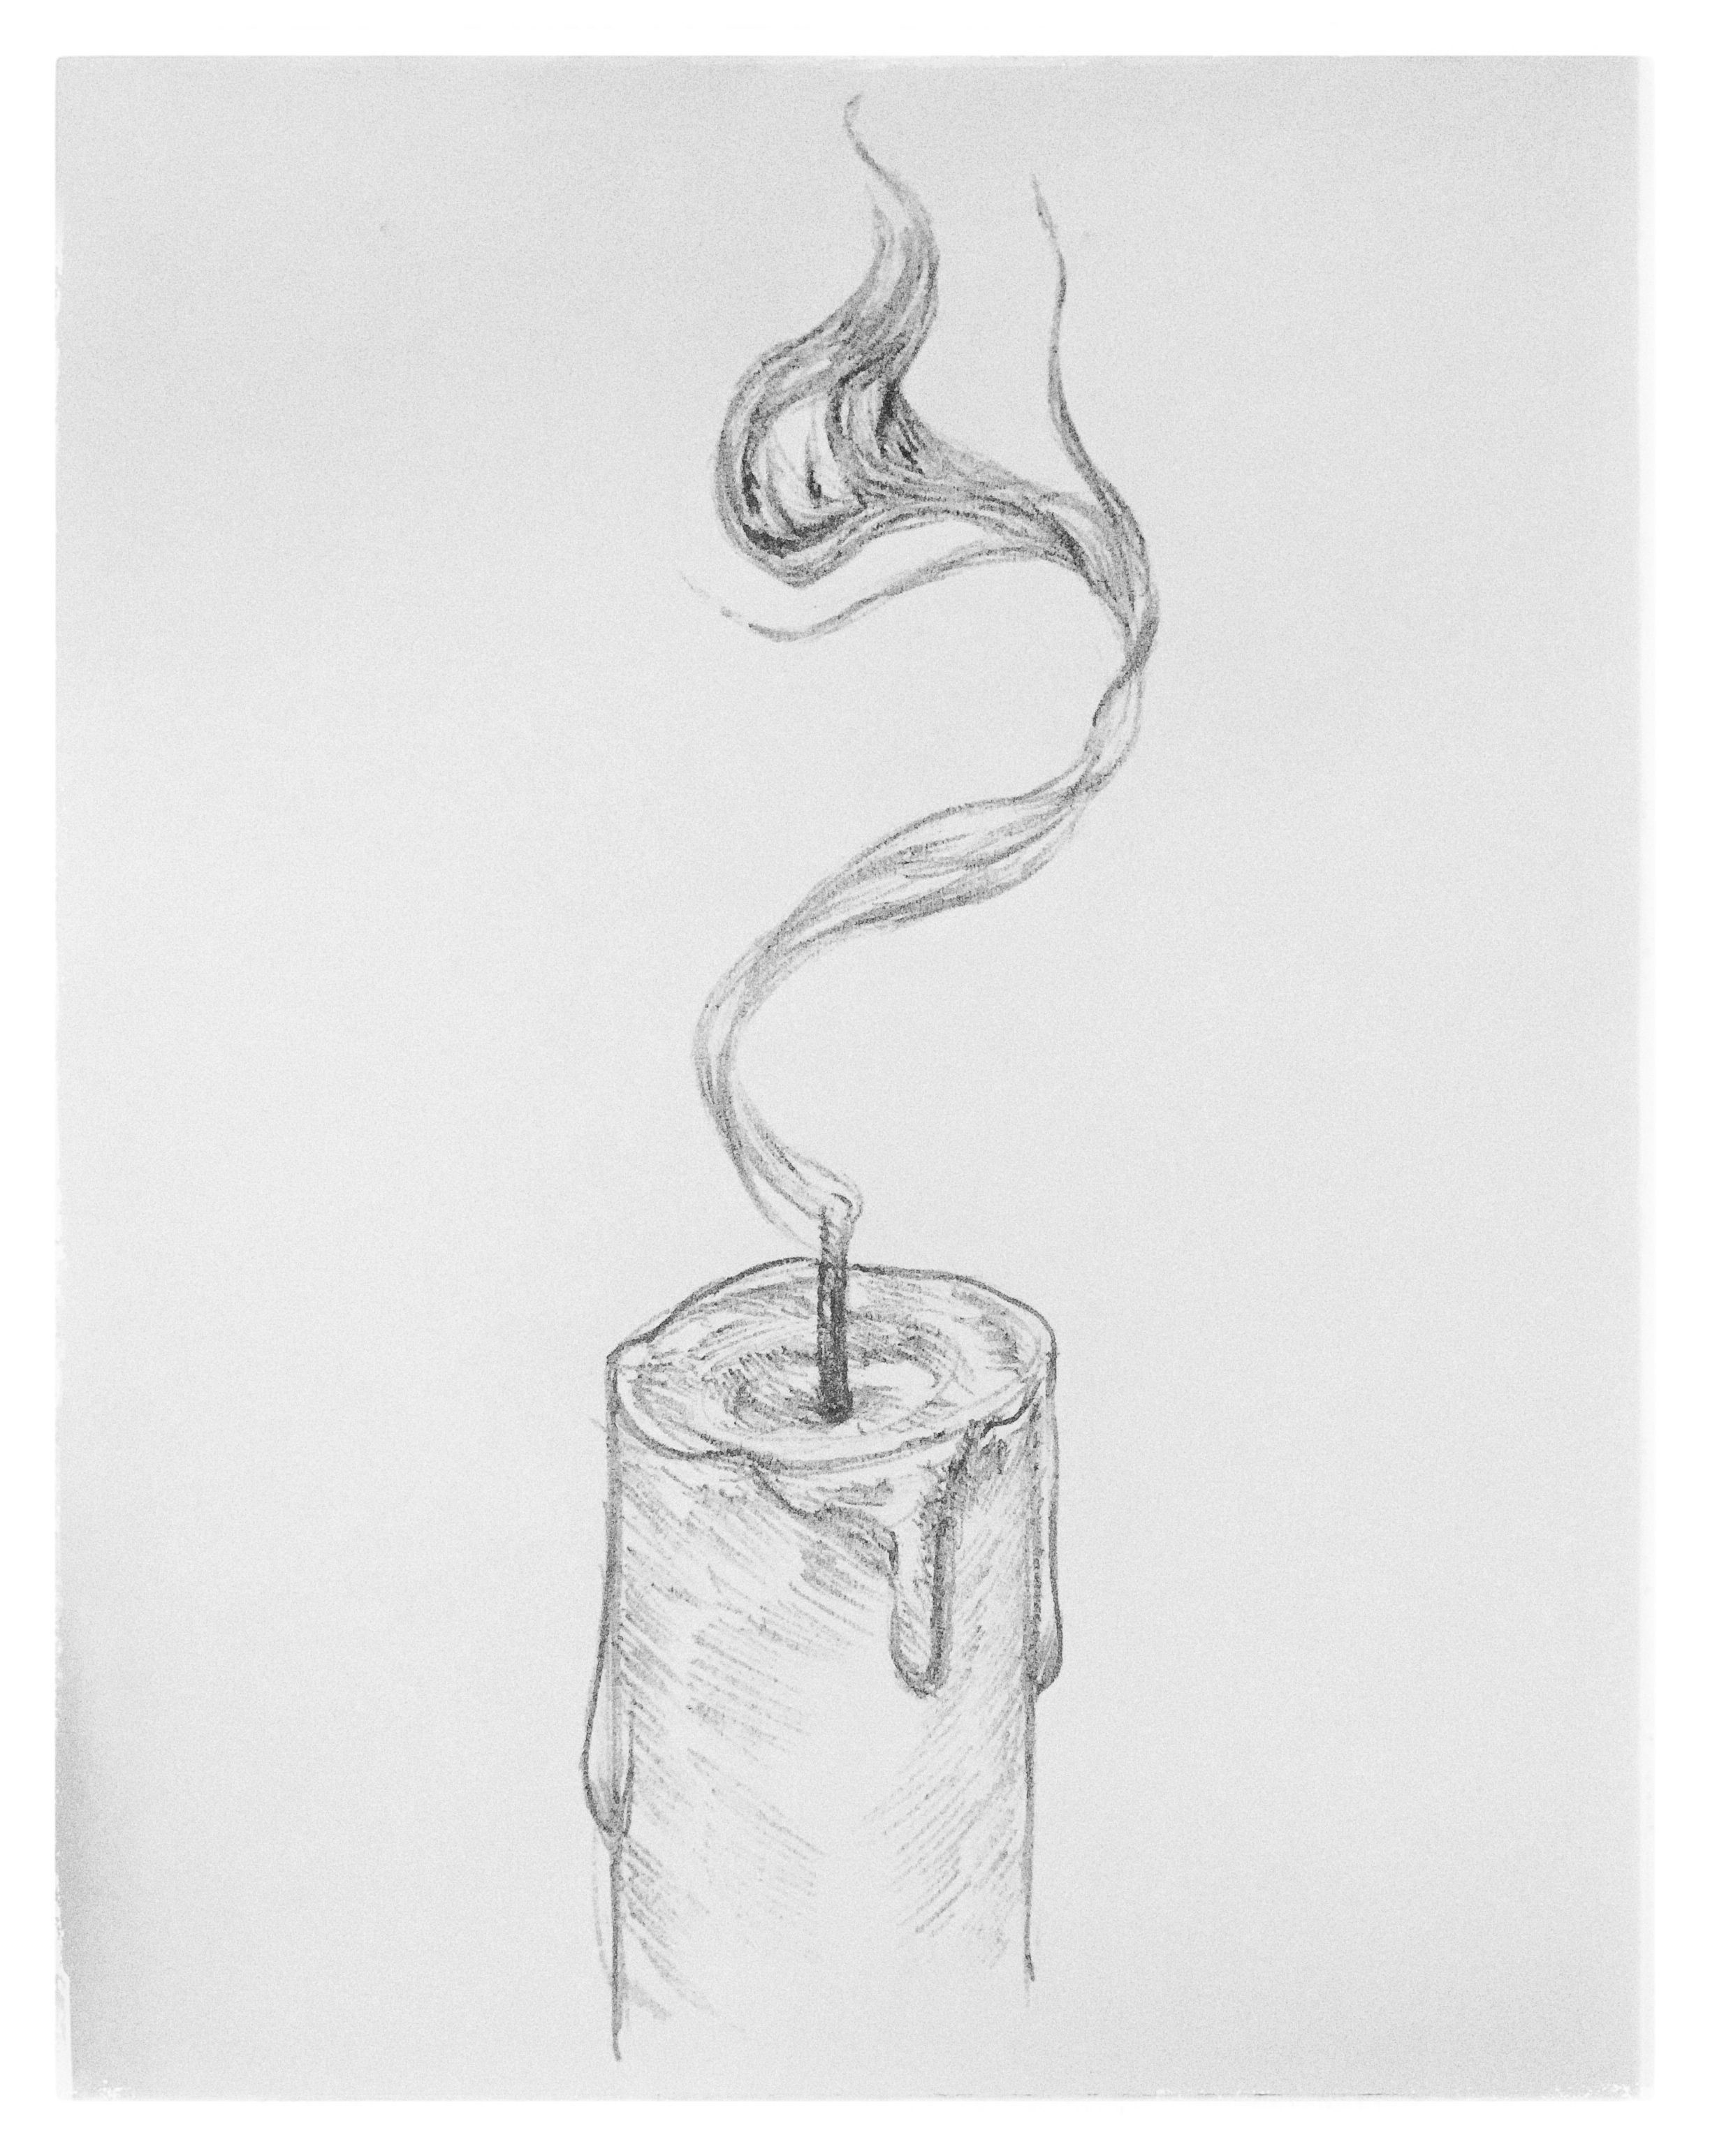 8 smoke spirit ghost candle character pencil cartoon sketch